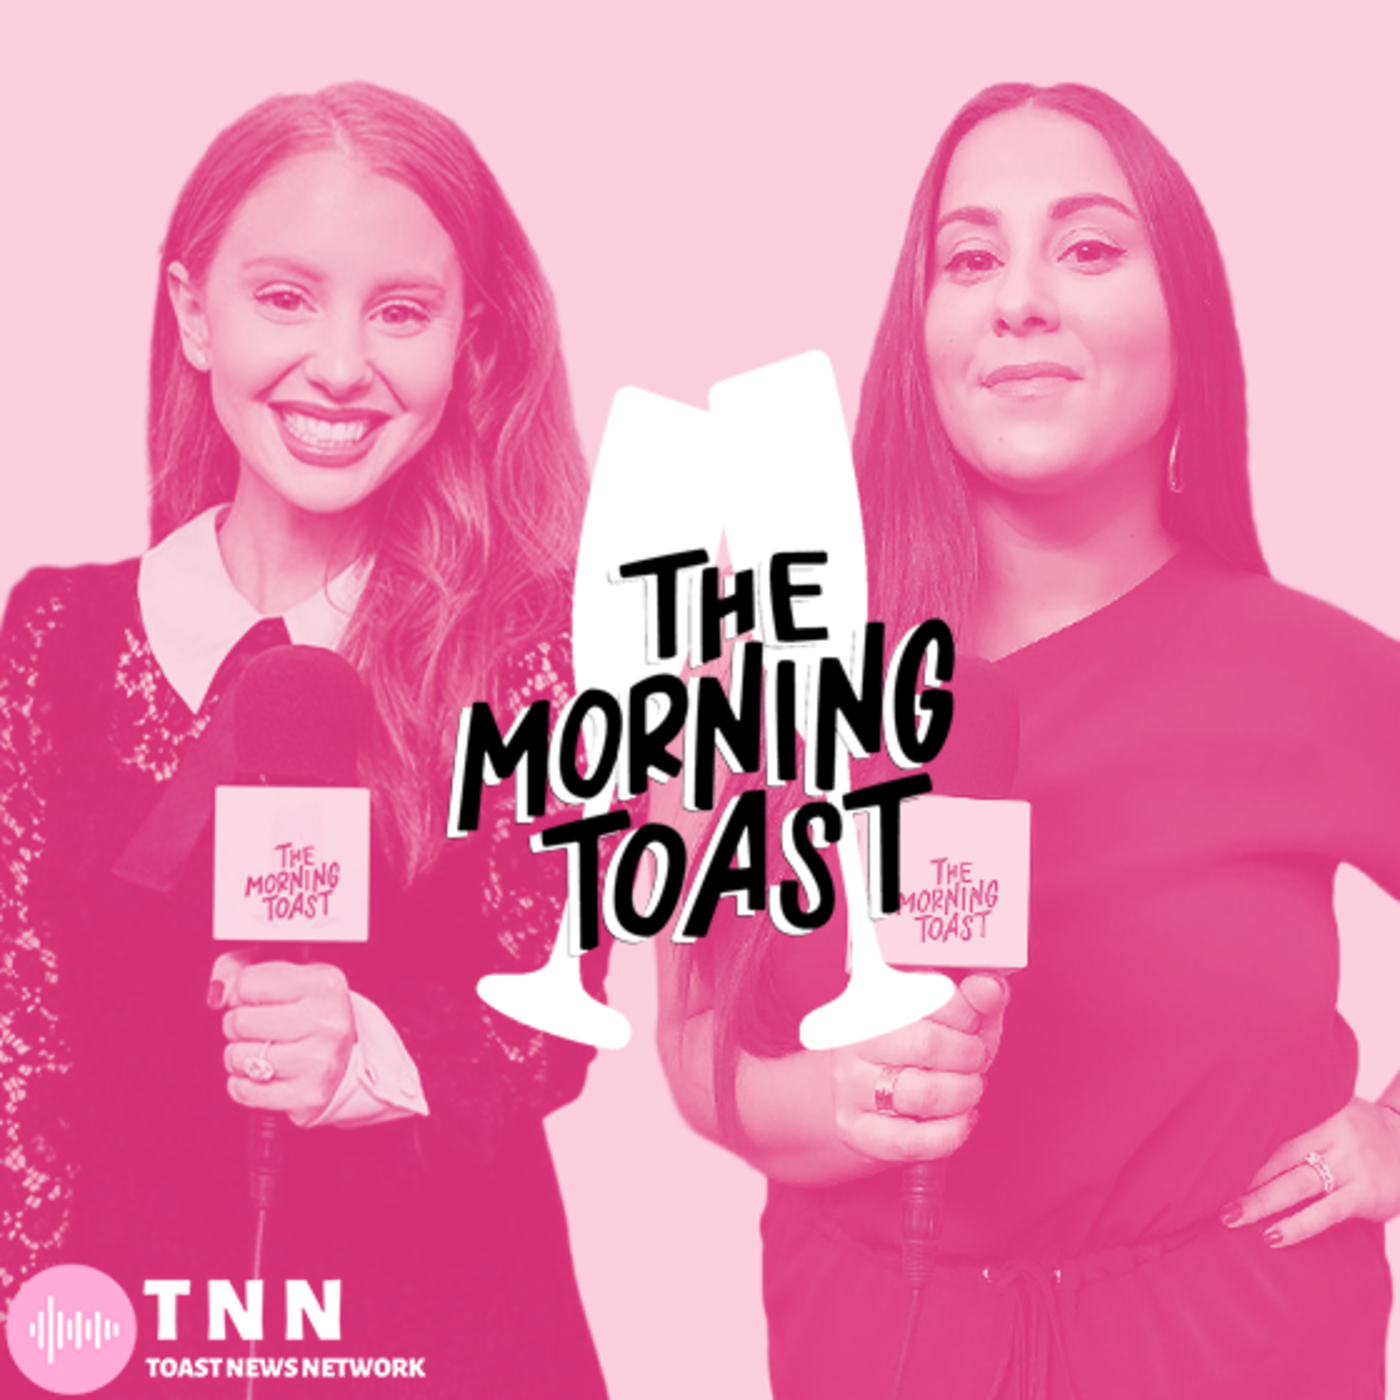 The Morning Toast podcast cover